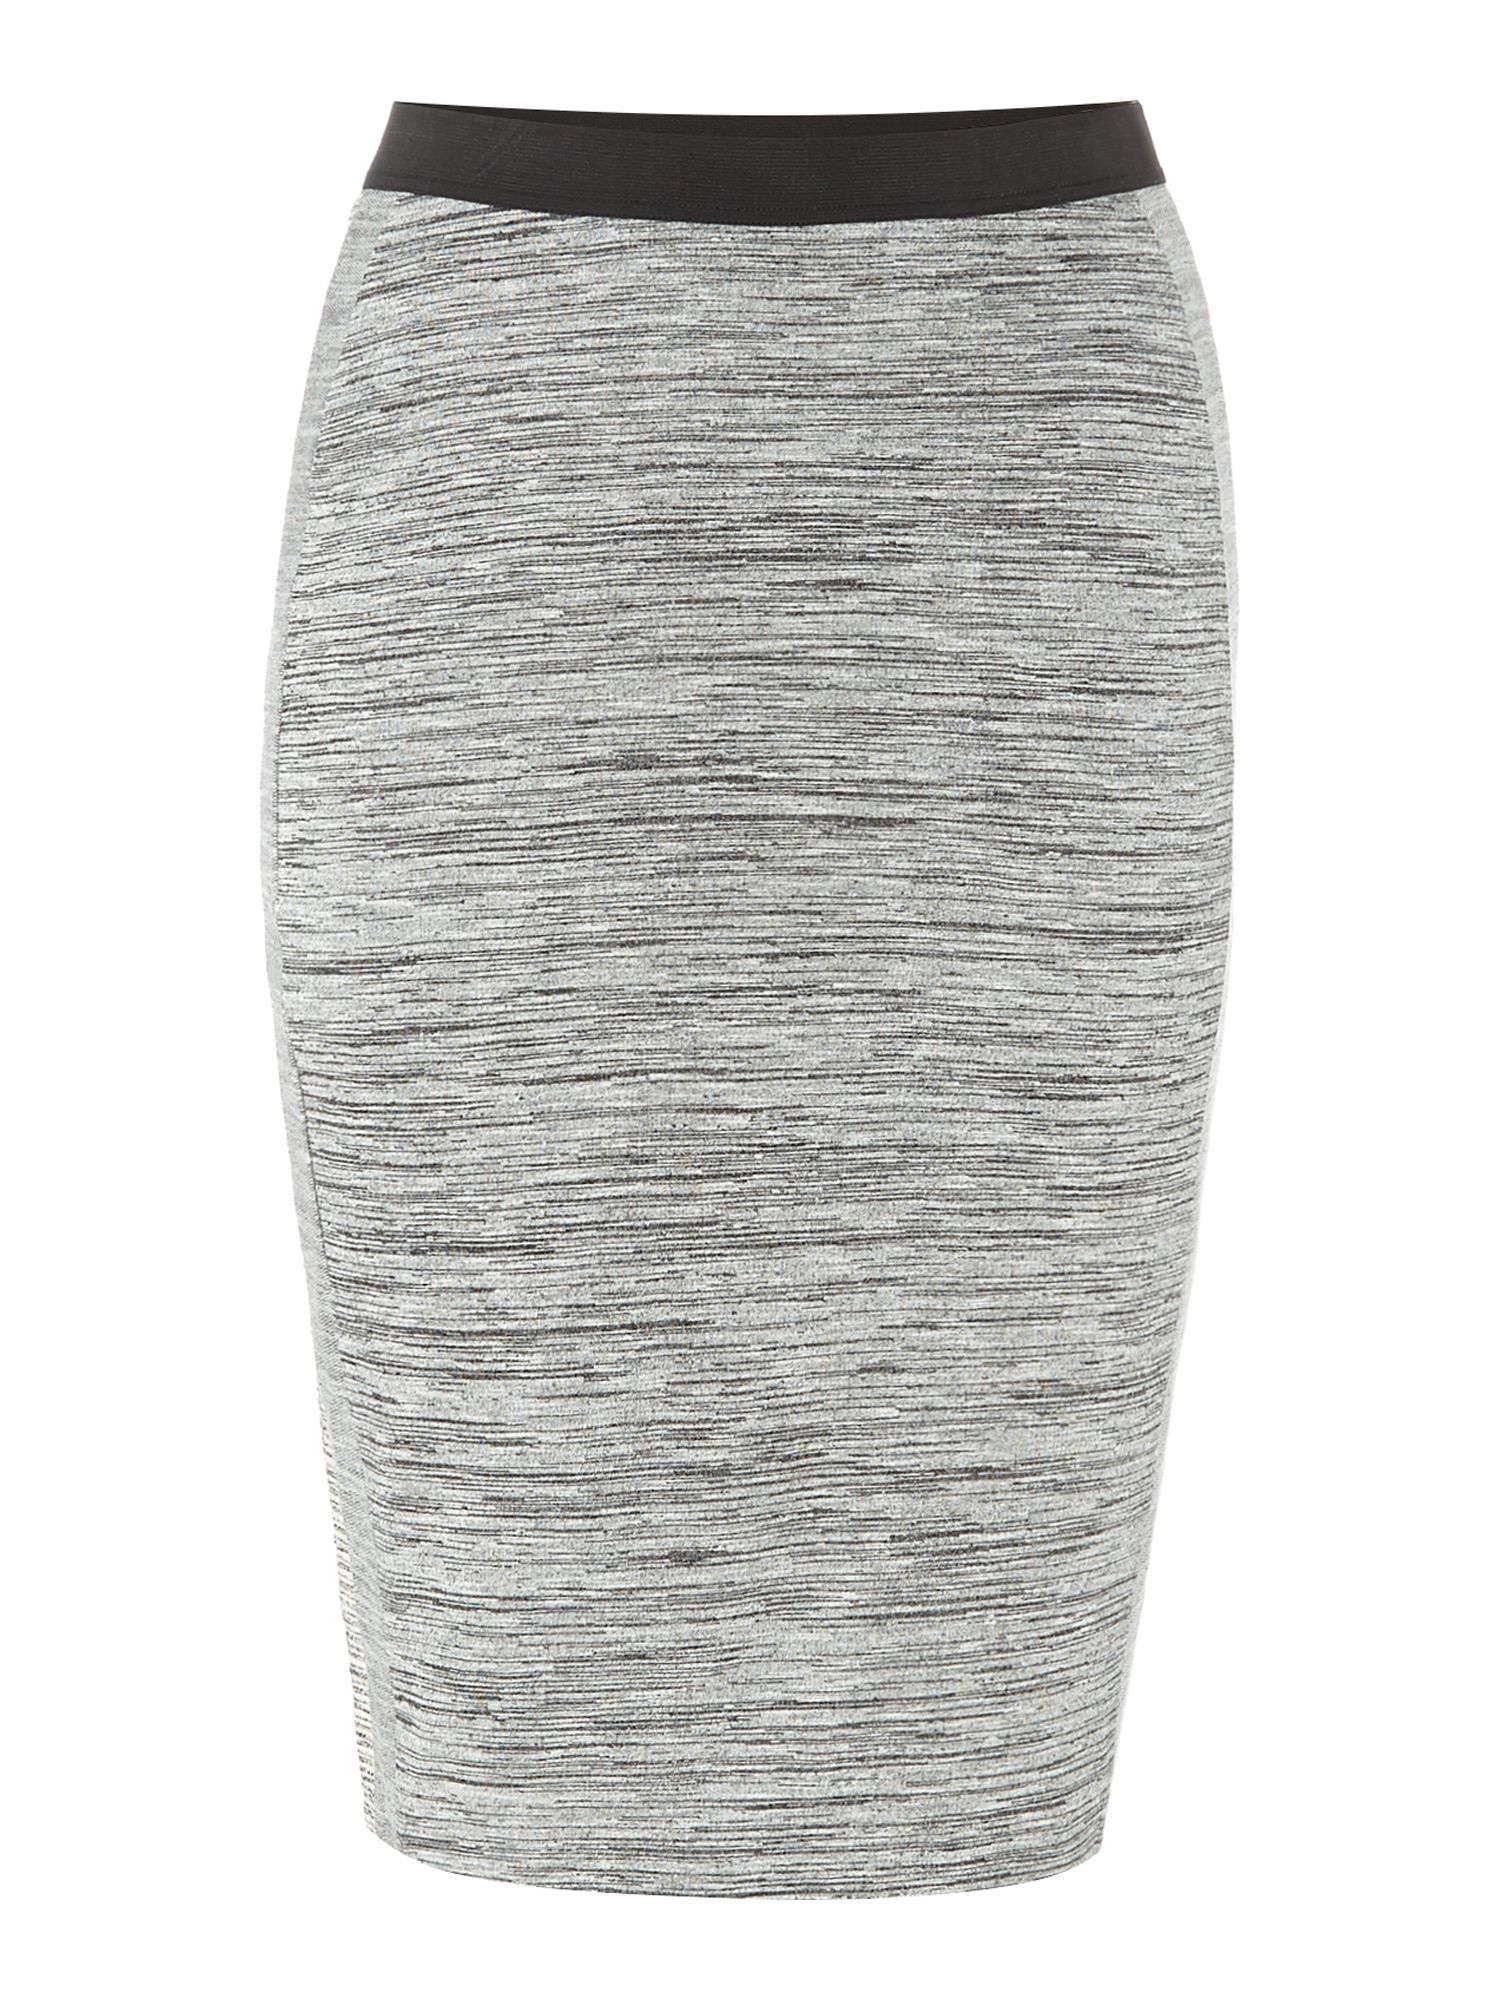 Bodycon below knee skirt